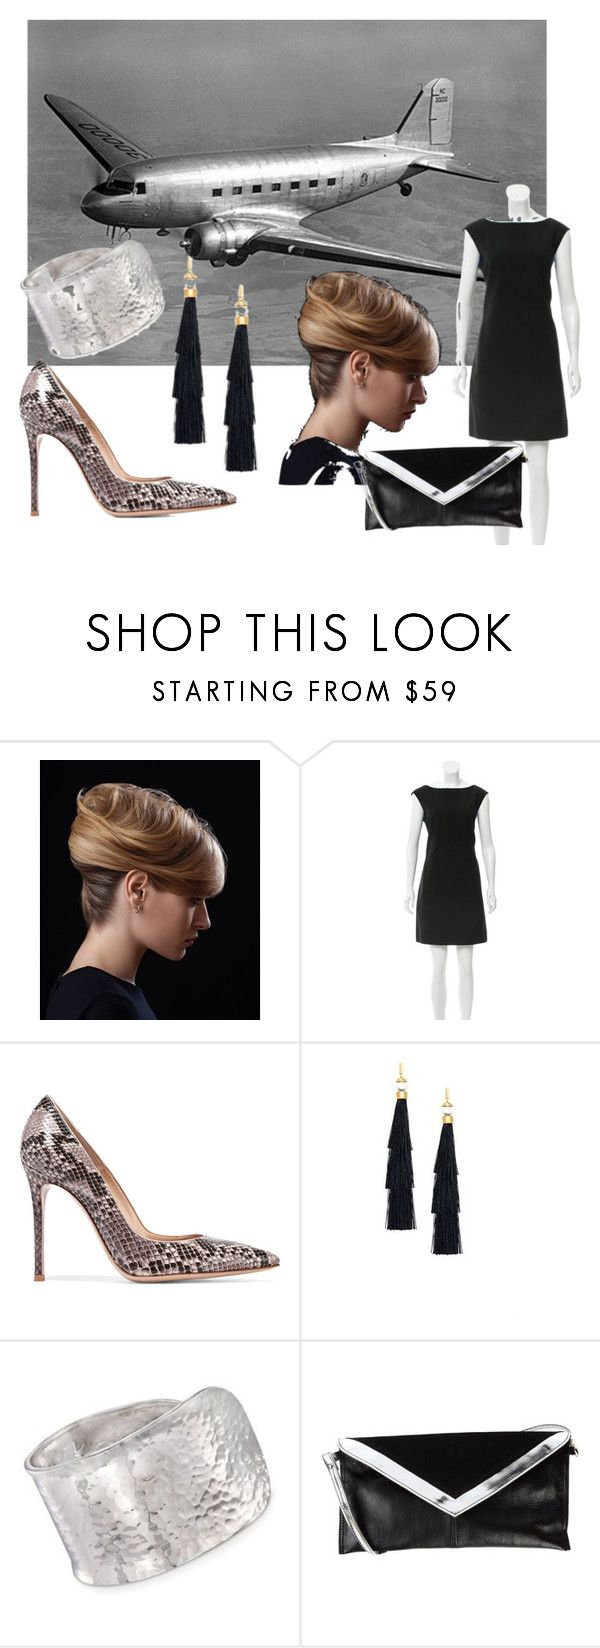 Welcome Party by identicallists on Polyvore featuring Kate Spade, Gianvito Rossi, White in 8, Ross-Simons and Rachel Zoe